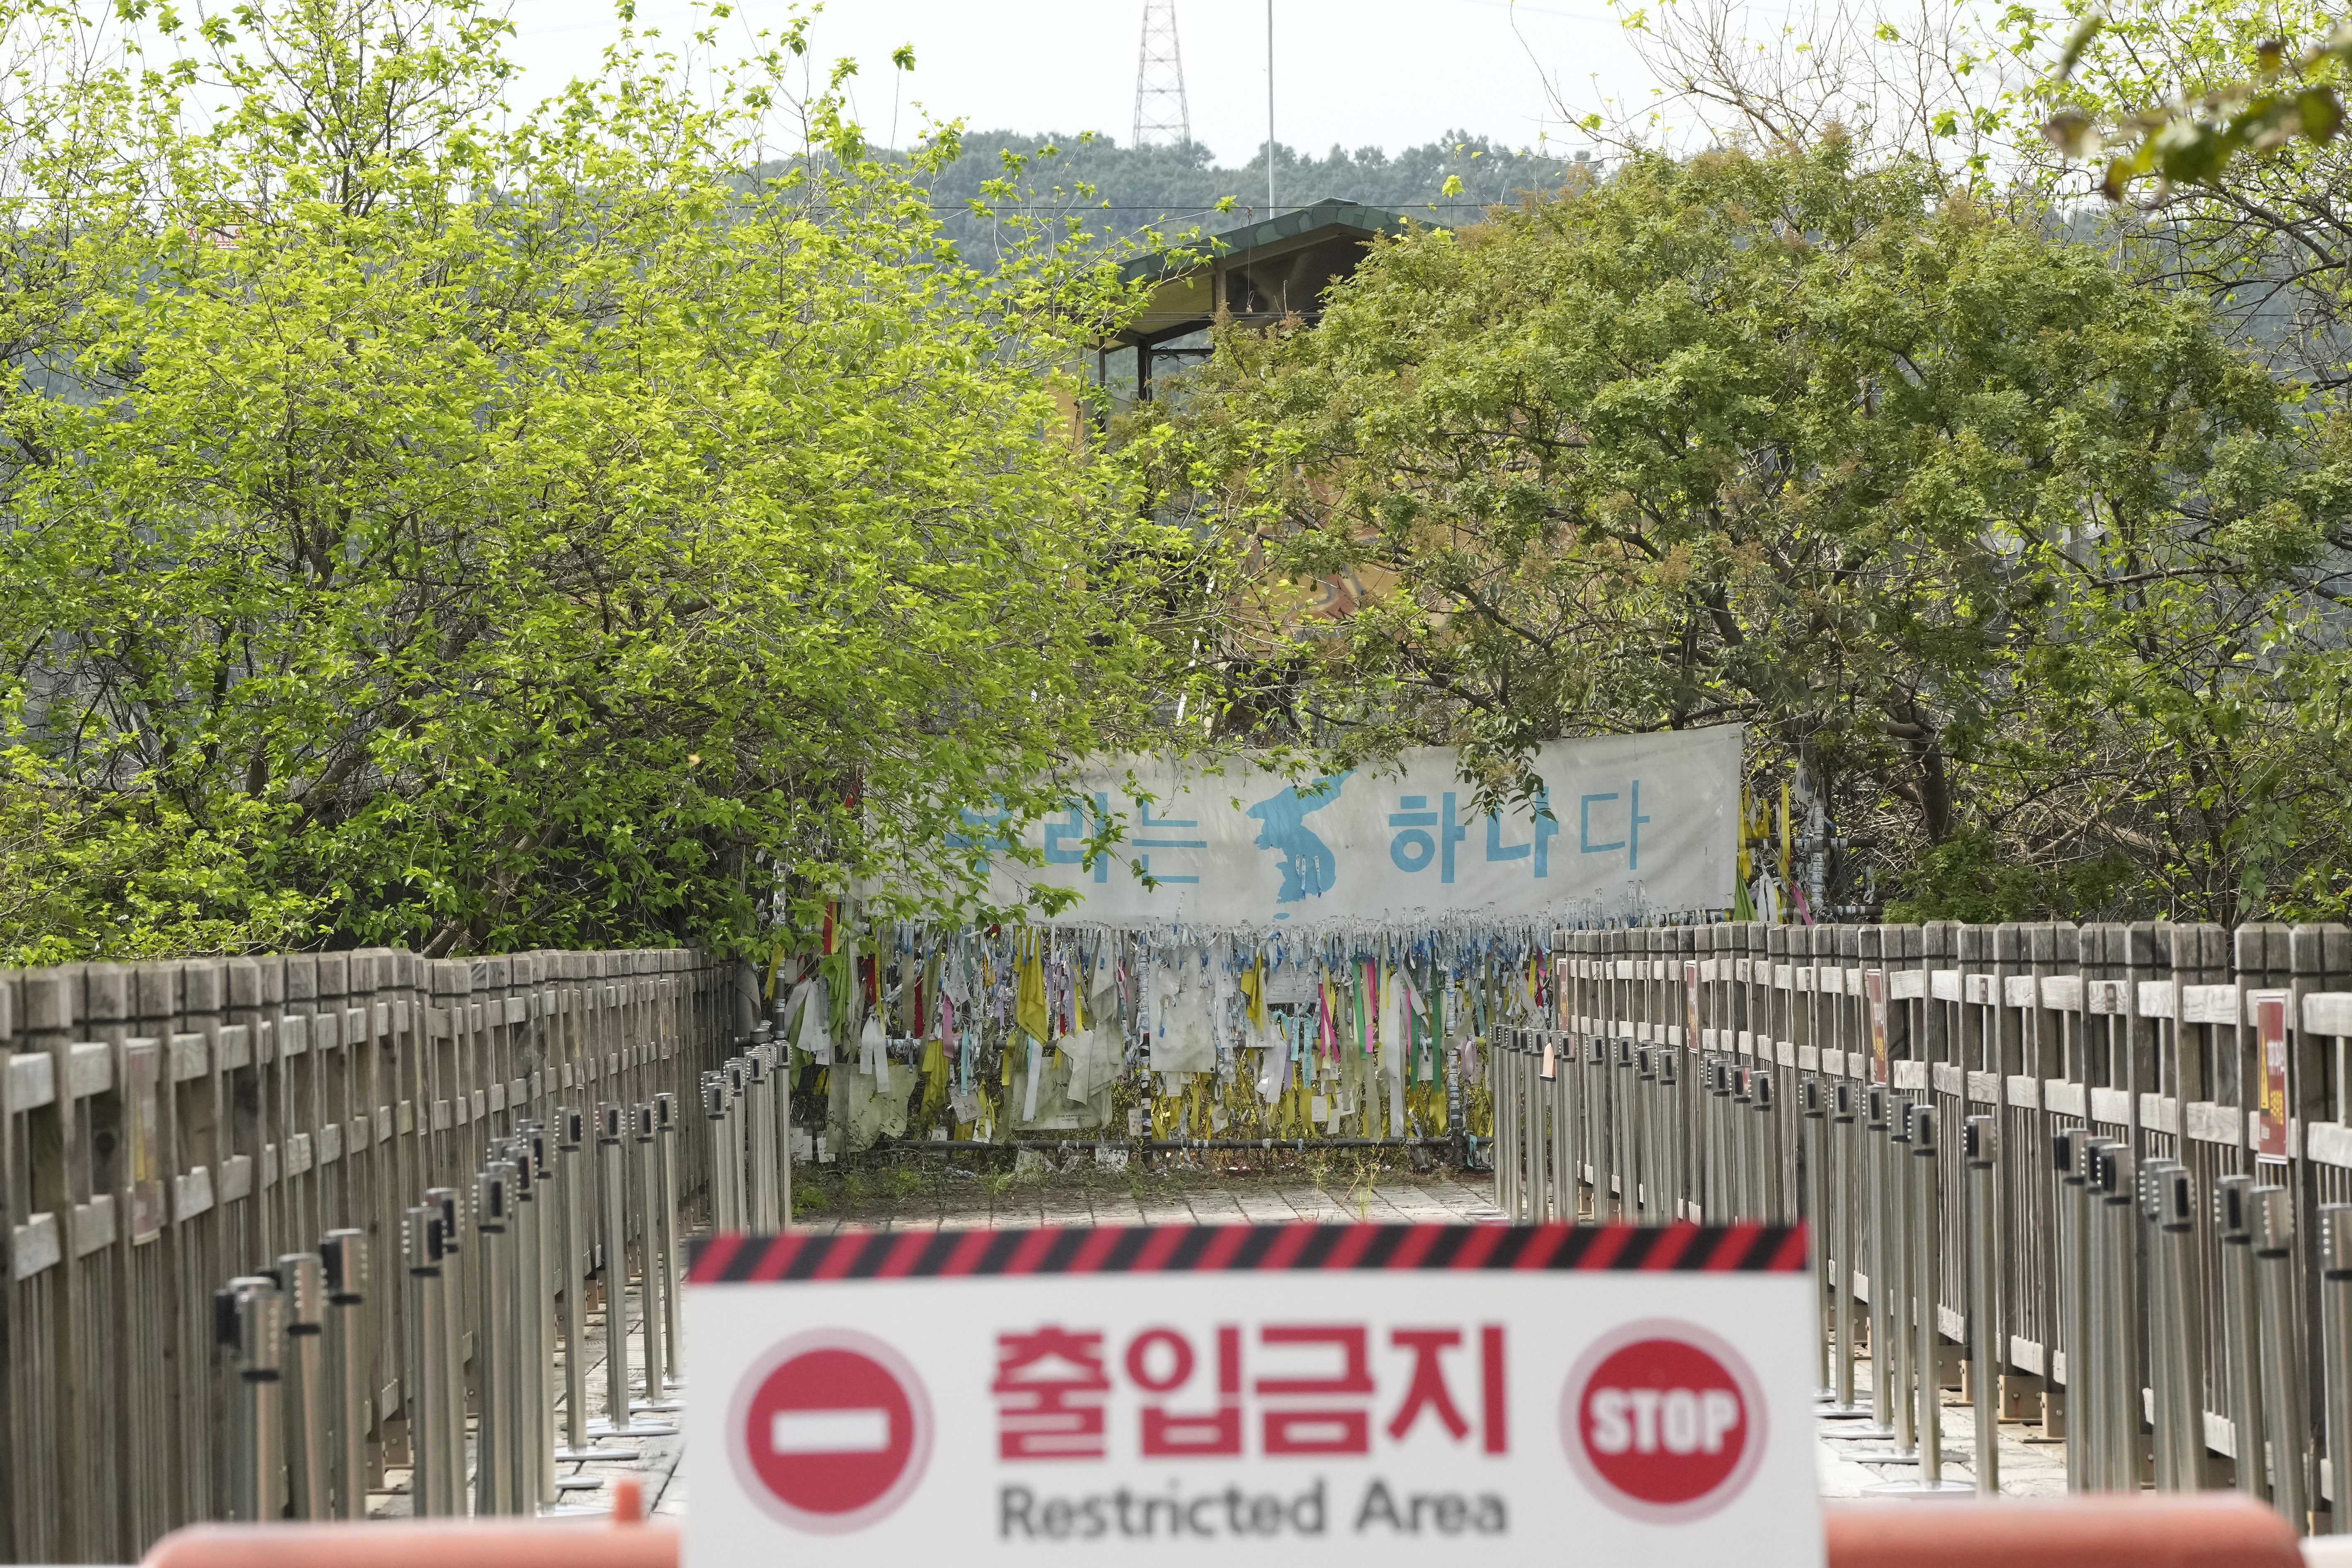 A banner and ribbons wishing reunification of the two Koreas are displayed on the wire fence at the Imjingak Pavilion in Paju, near the border with North Korea.